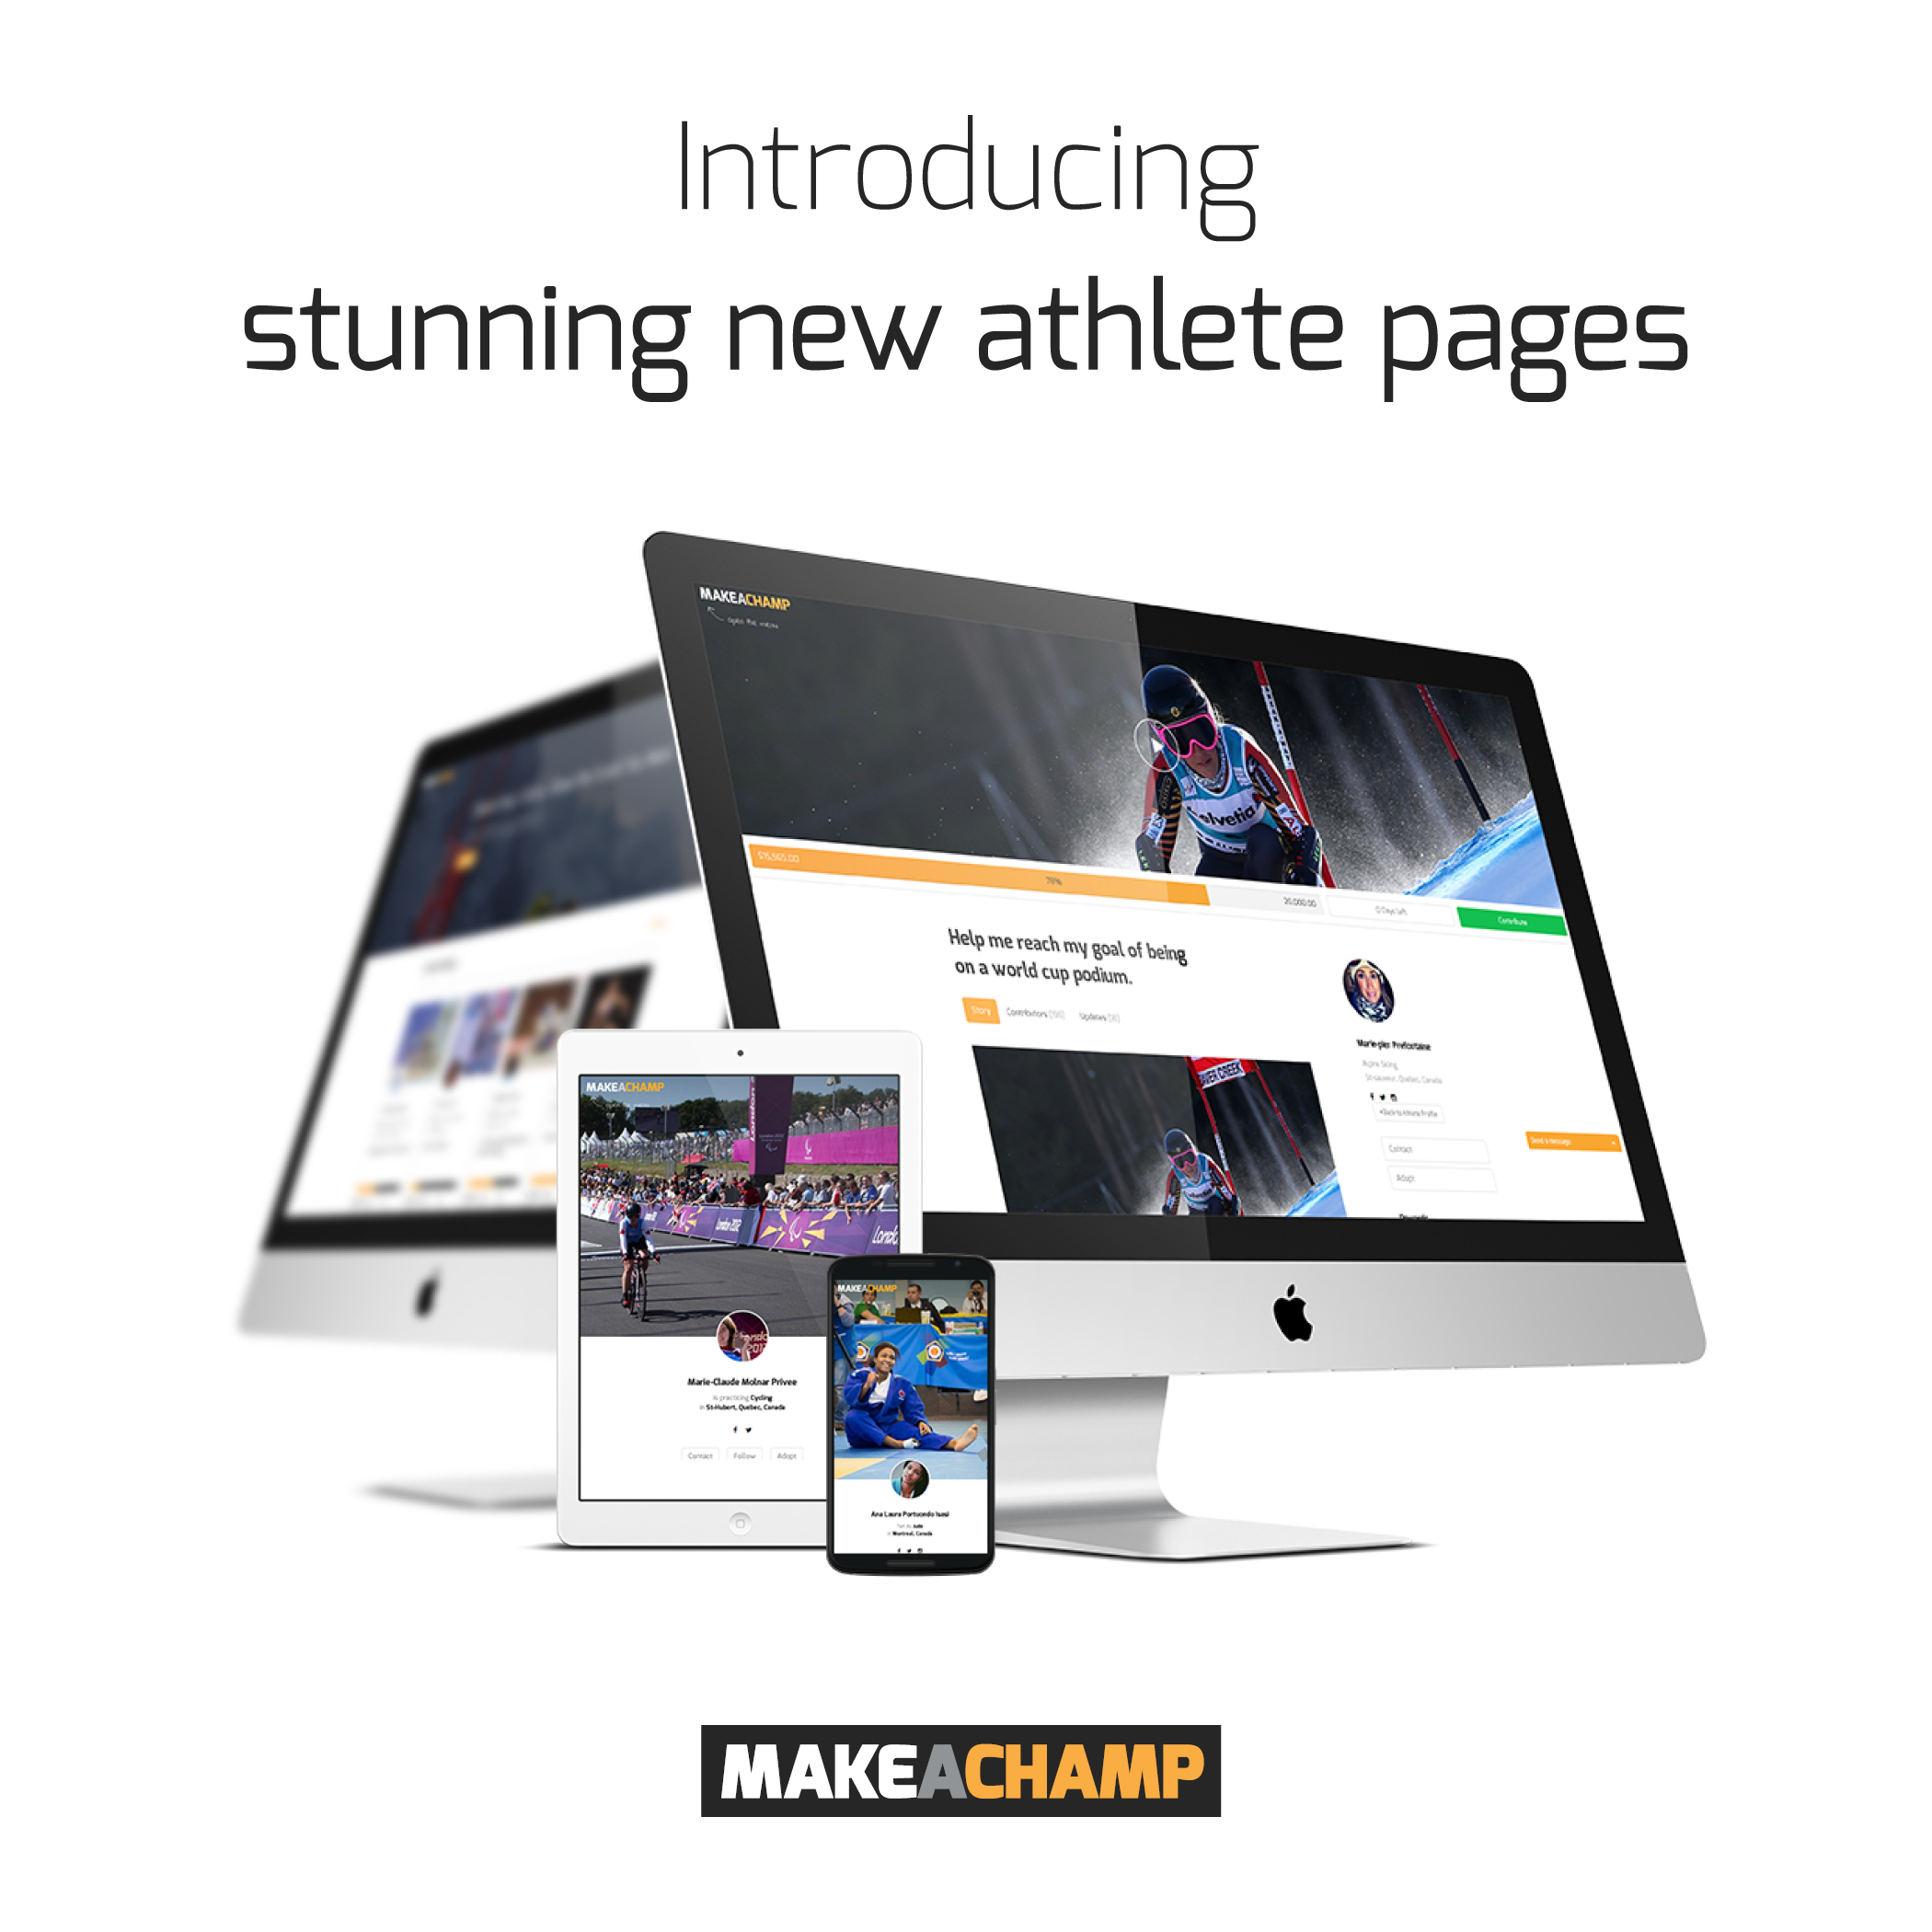 introducing new athlete pages at sports crowdfunding platform MAKEACHAMP